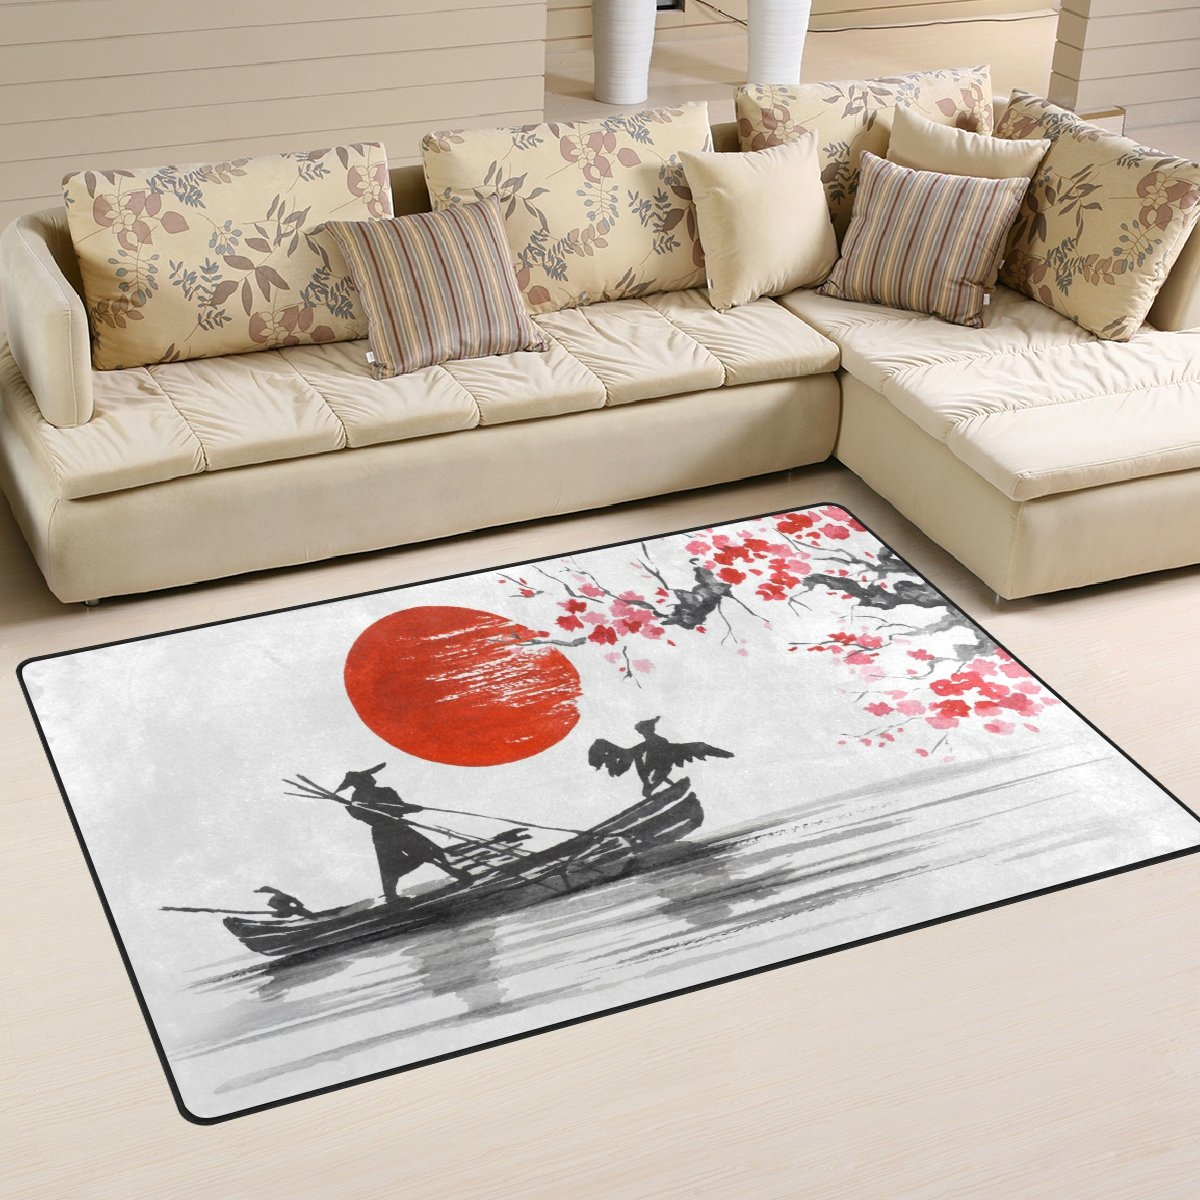 WOZO Japanese Painting Mountain Boat Cherry Blossom Area Rug Rugs Non-Slip Floor Mat Doormats Living Room Bedroom 31 x 20 inches g2987584p146c161s240